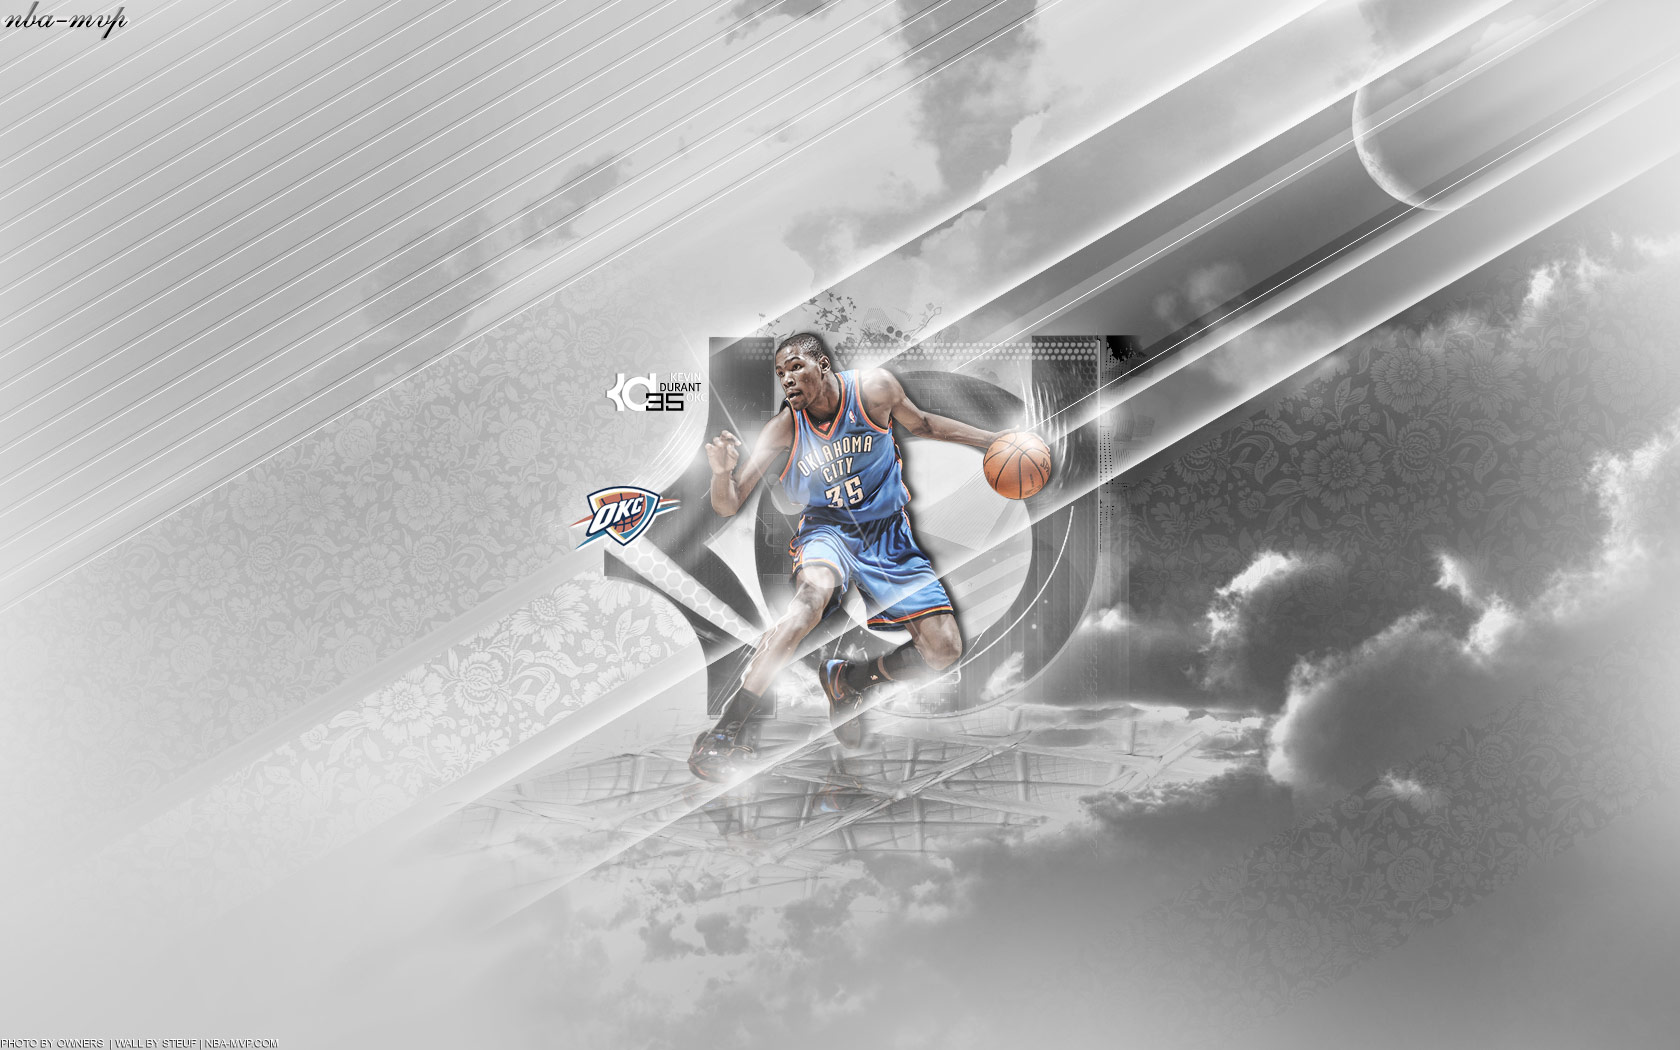 related kevin durant 1600x900 05 26 2011 kevin durant 1440x900 thunder 1680x1050